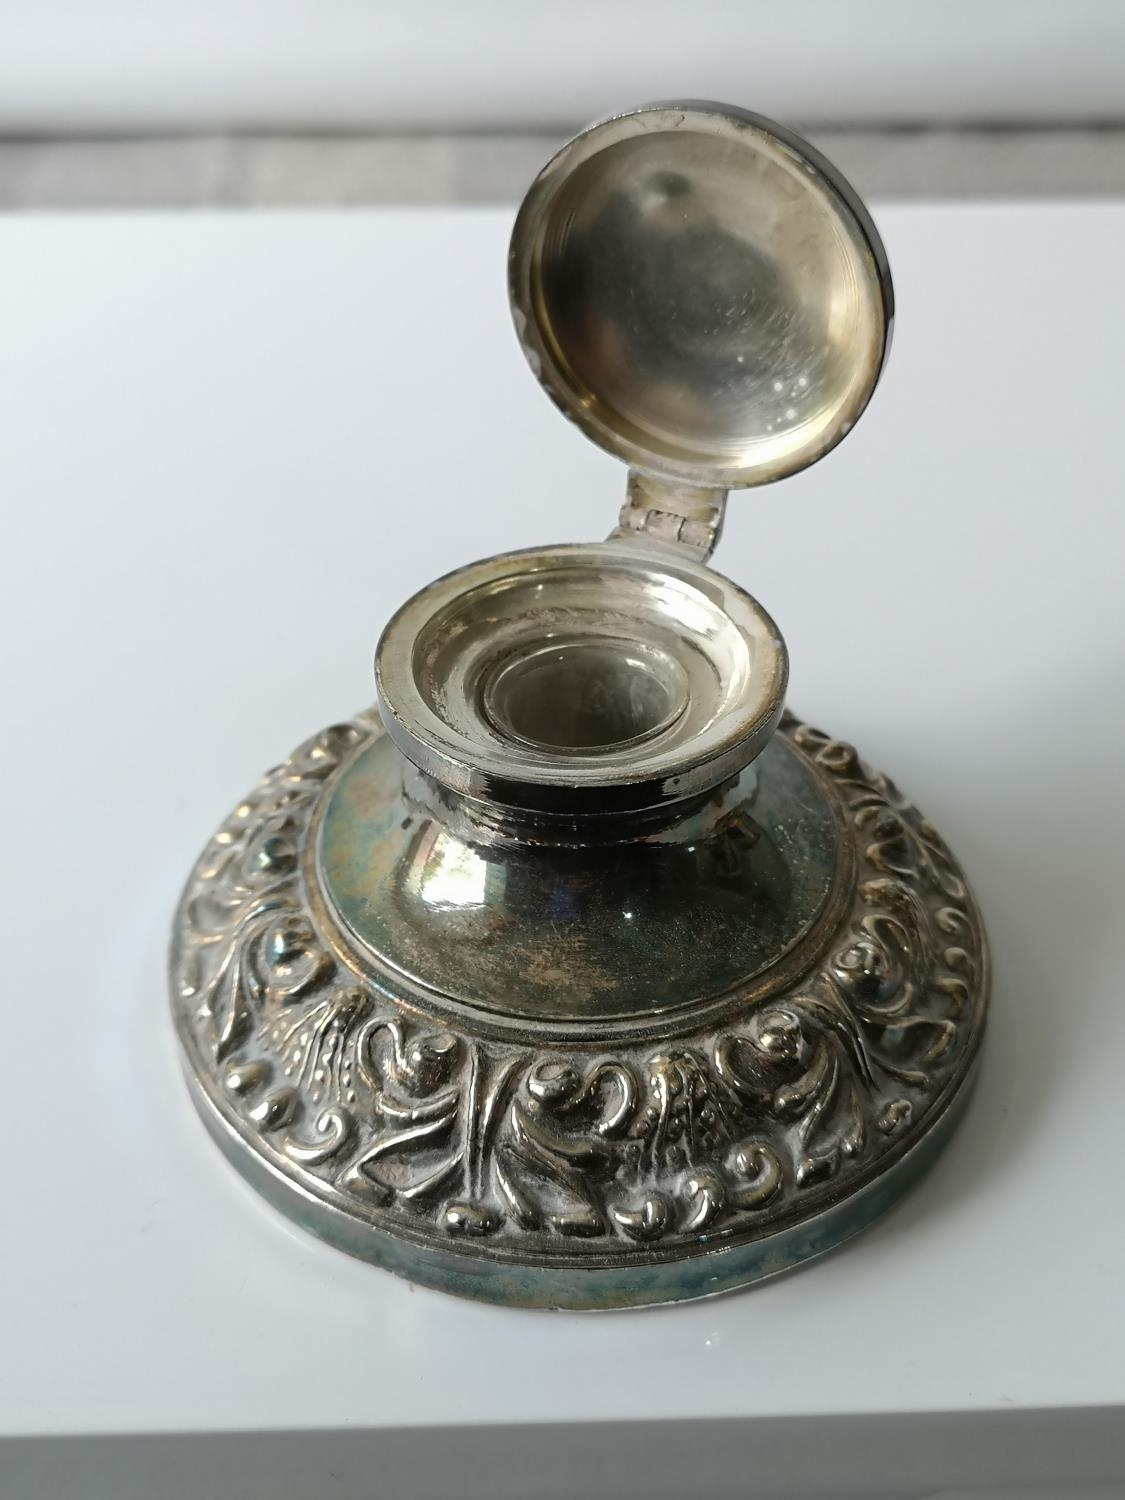 An antique ornate white metal/ plated ink well pot with glass insert. [5.5x9.5x9.5cm]